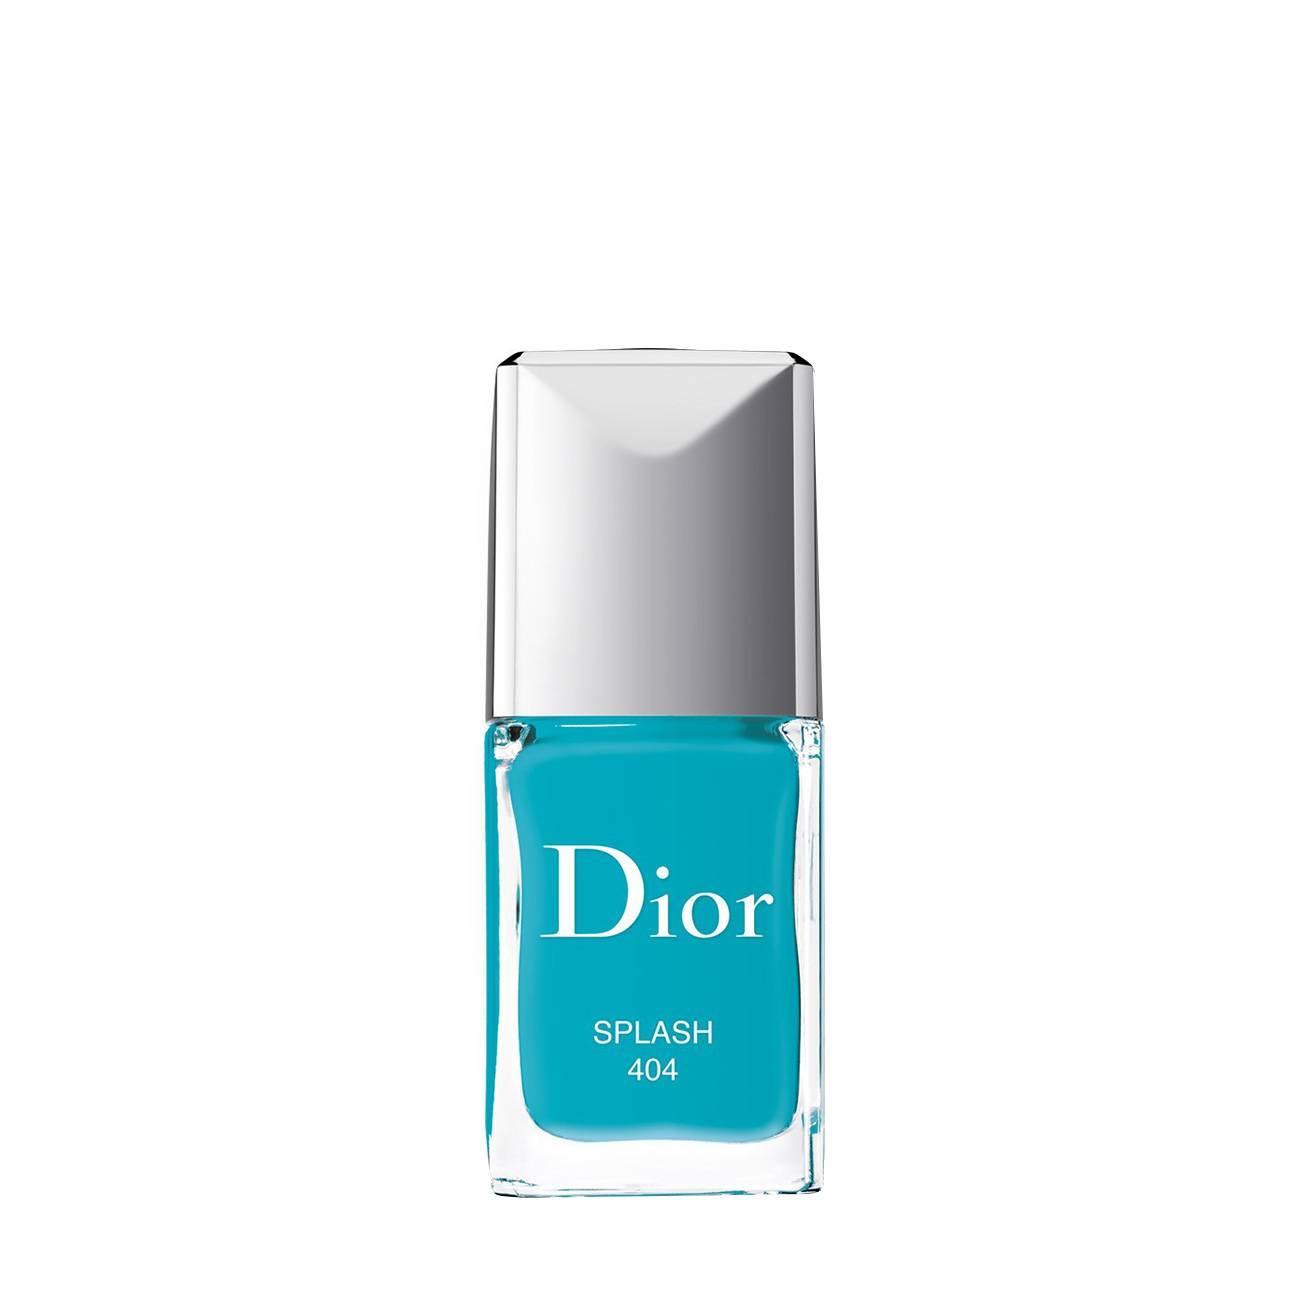 Dior Vernis 404 10ml Dior imagine 2021 bestvalue.eu